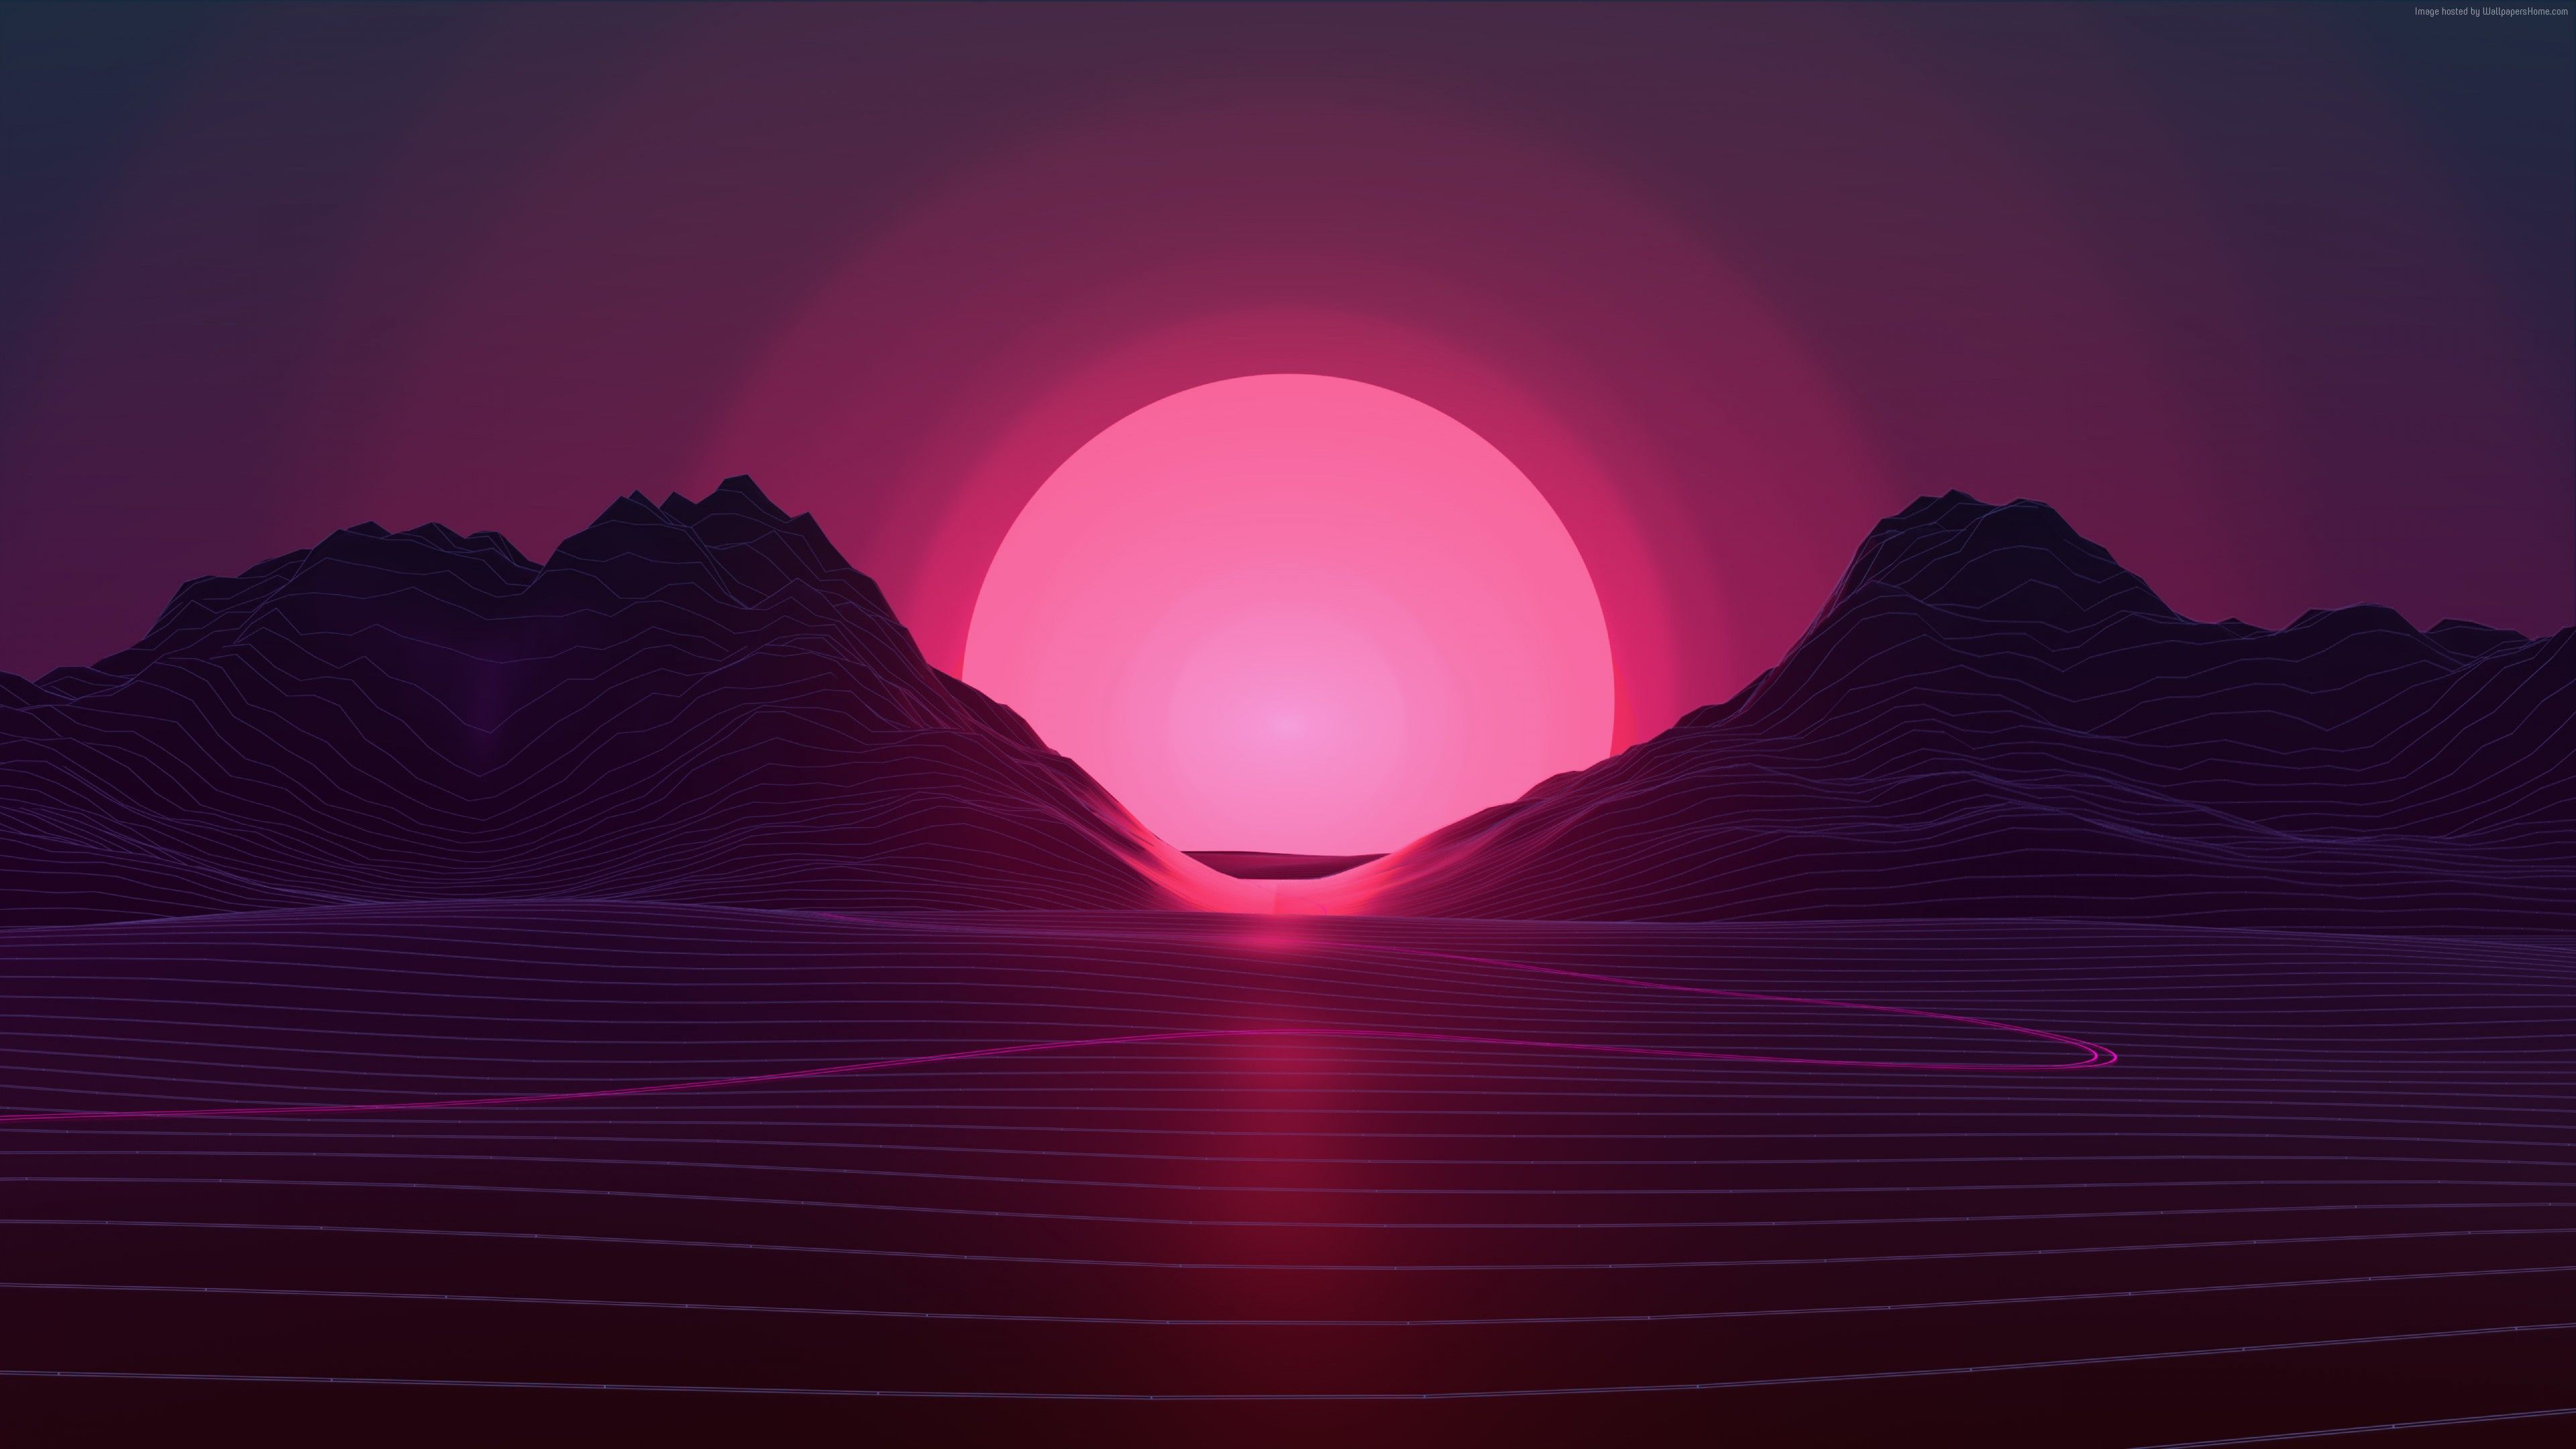 Wallpaper Retrowave Lines Sunset 4k Abstract Http Www Wallpaperback Net Abstract Wallpaper Retrowave Vaporwave Wallpaper Neon Wallpaper Sunset Wallpaper